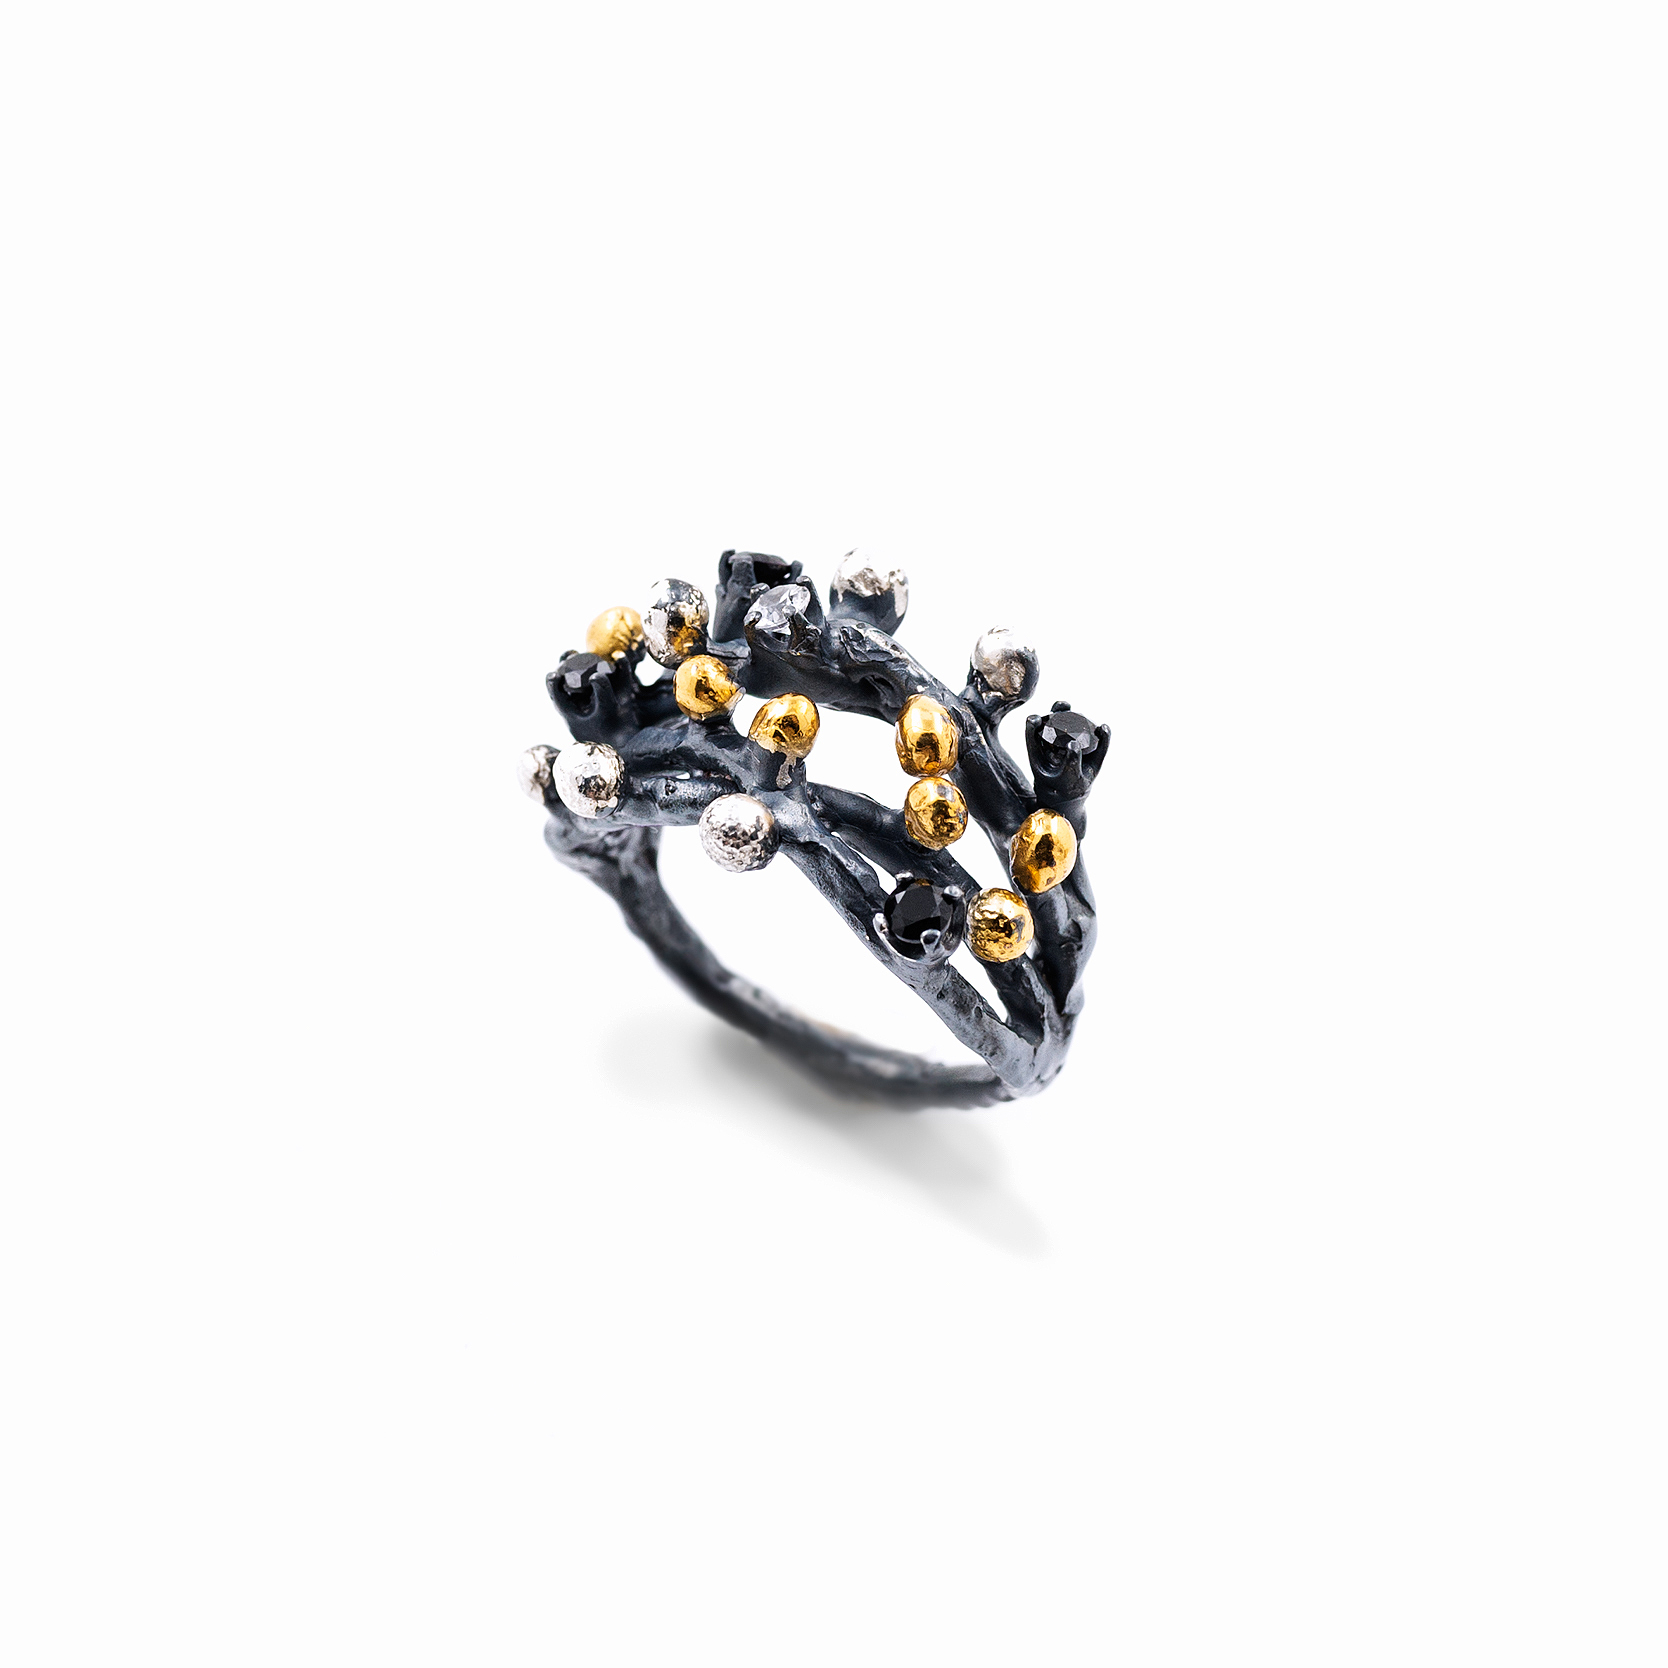 Efflorescence Ring | Sterling silver, white sapphire, spinel, gold vermeil, patina.